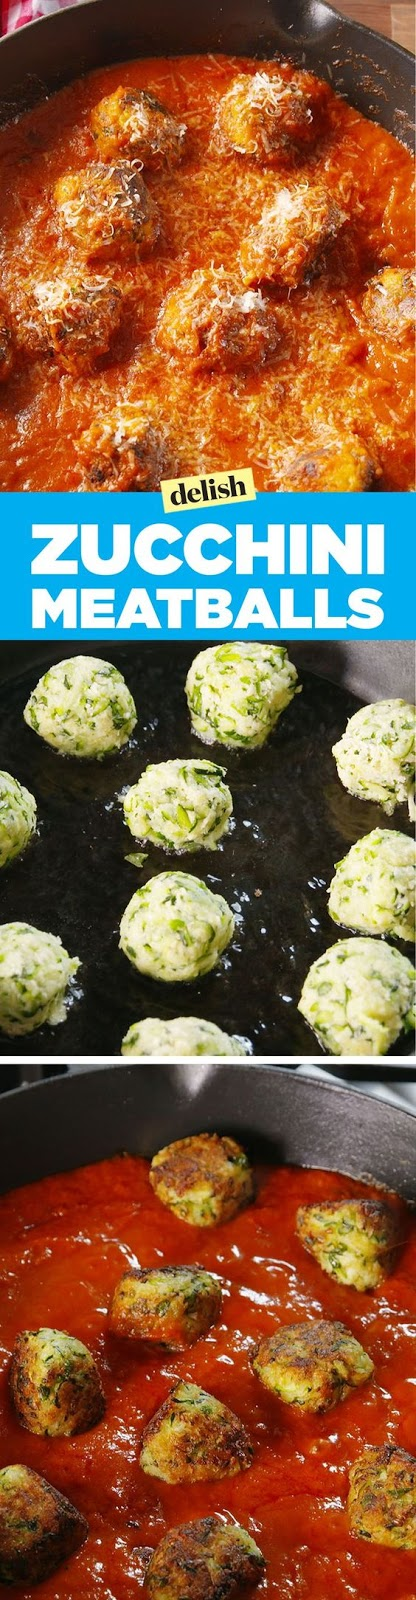 """Zucchini """"Meatballs""""   #DESSERTS #HEALTHYFOOD #EASY_RECIPES #DINNER #LAUCH #DELICIOUS #EASY #HOLIDAYS #RECIPE #SPECIAL_DIET #WORLD_CUISINE #CAKE #GRILL #APPETIZERS #HEALTHY_RECIPES #DRINKS #COOKING_METHOD #ITALIAN_RECIPES #MEAT #VEGAN_RECIPES #COOKIES #PASTA #FRUIT #SALAD #SOUP_APPETIZERS #NON_ALCOHOLIC_DRINKS #MEAL_PLANNING #VEGETABLES #SOUP #PASTRY #CHOCOLATE #DAIRY #ALCOHOLIC_DRINKS #BULGUR_SALAD #BAKING #SNACKS #BEEF_RECIPES #MEAT_APPETIZERS #MEXICAN_RECIPES #BREAD #ASIAN_RECIPES #SEAFOOD_APPETIZERS #MUFFINS #BREAKFAST_AND_BRUNCH #CONDIMENTS #CUPCAKES #CHEESE #CHICKEN_RECIPES #PIE #COFFEE #NO_BAKE_DESSERTS #HEALTHY_SNACKS #SEAFOOD #GRAIN #LUNCHES_DINNERS #MEXICAN #QUICK_BREAD #LIQUOR"""